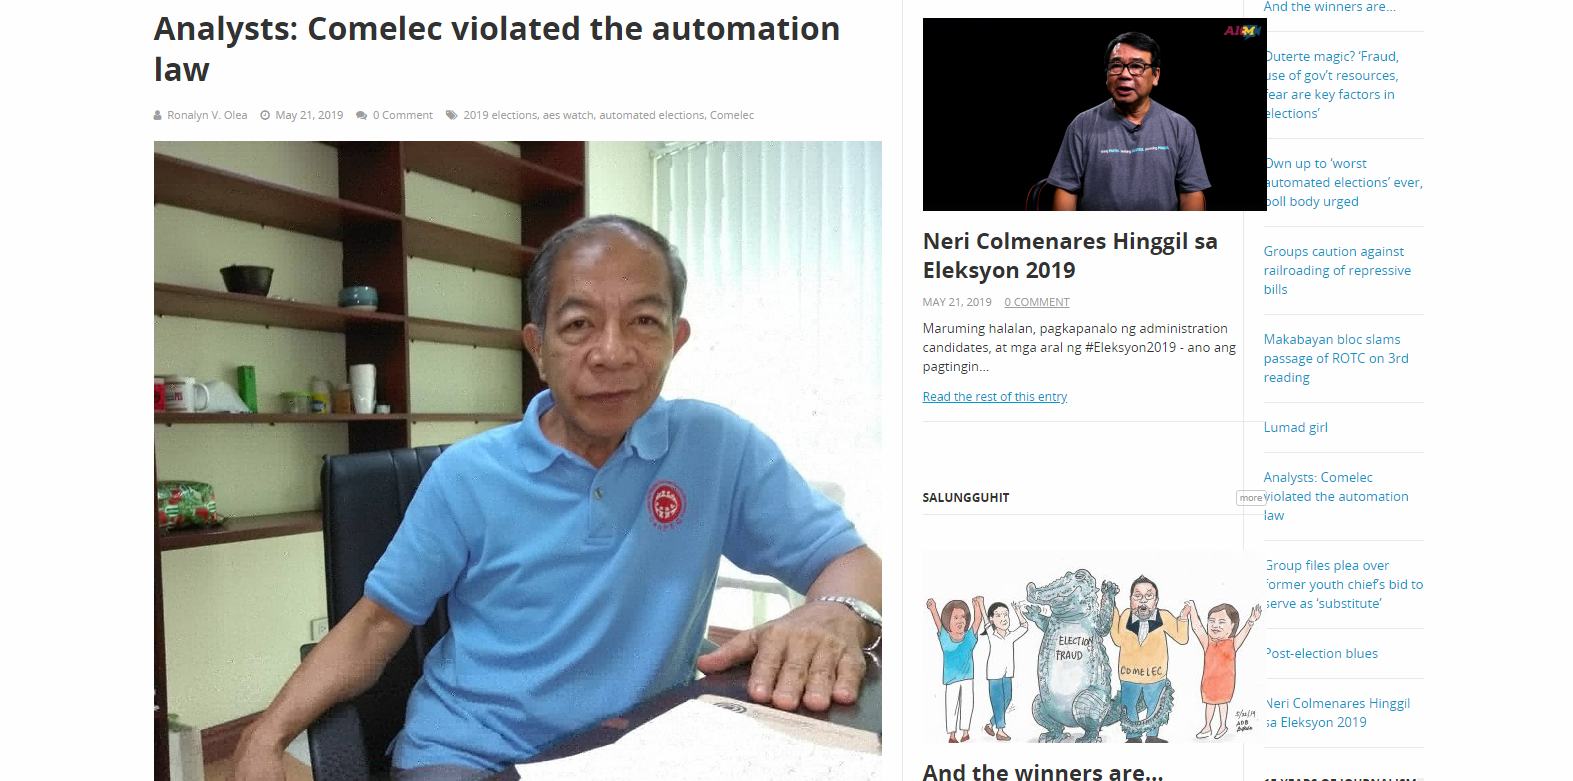 Analysts: Comelec violated the automation law